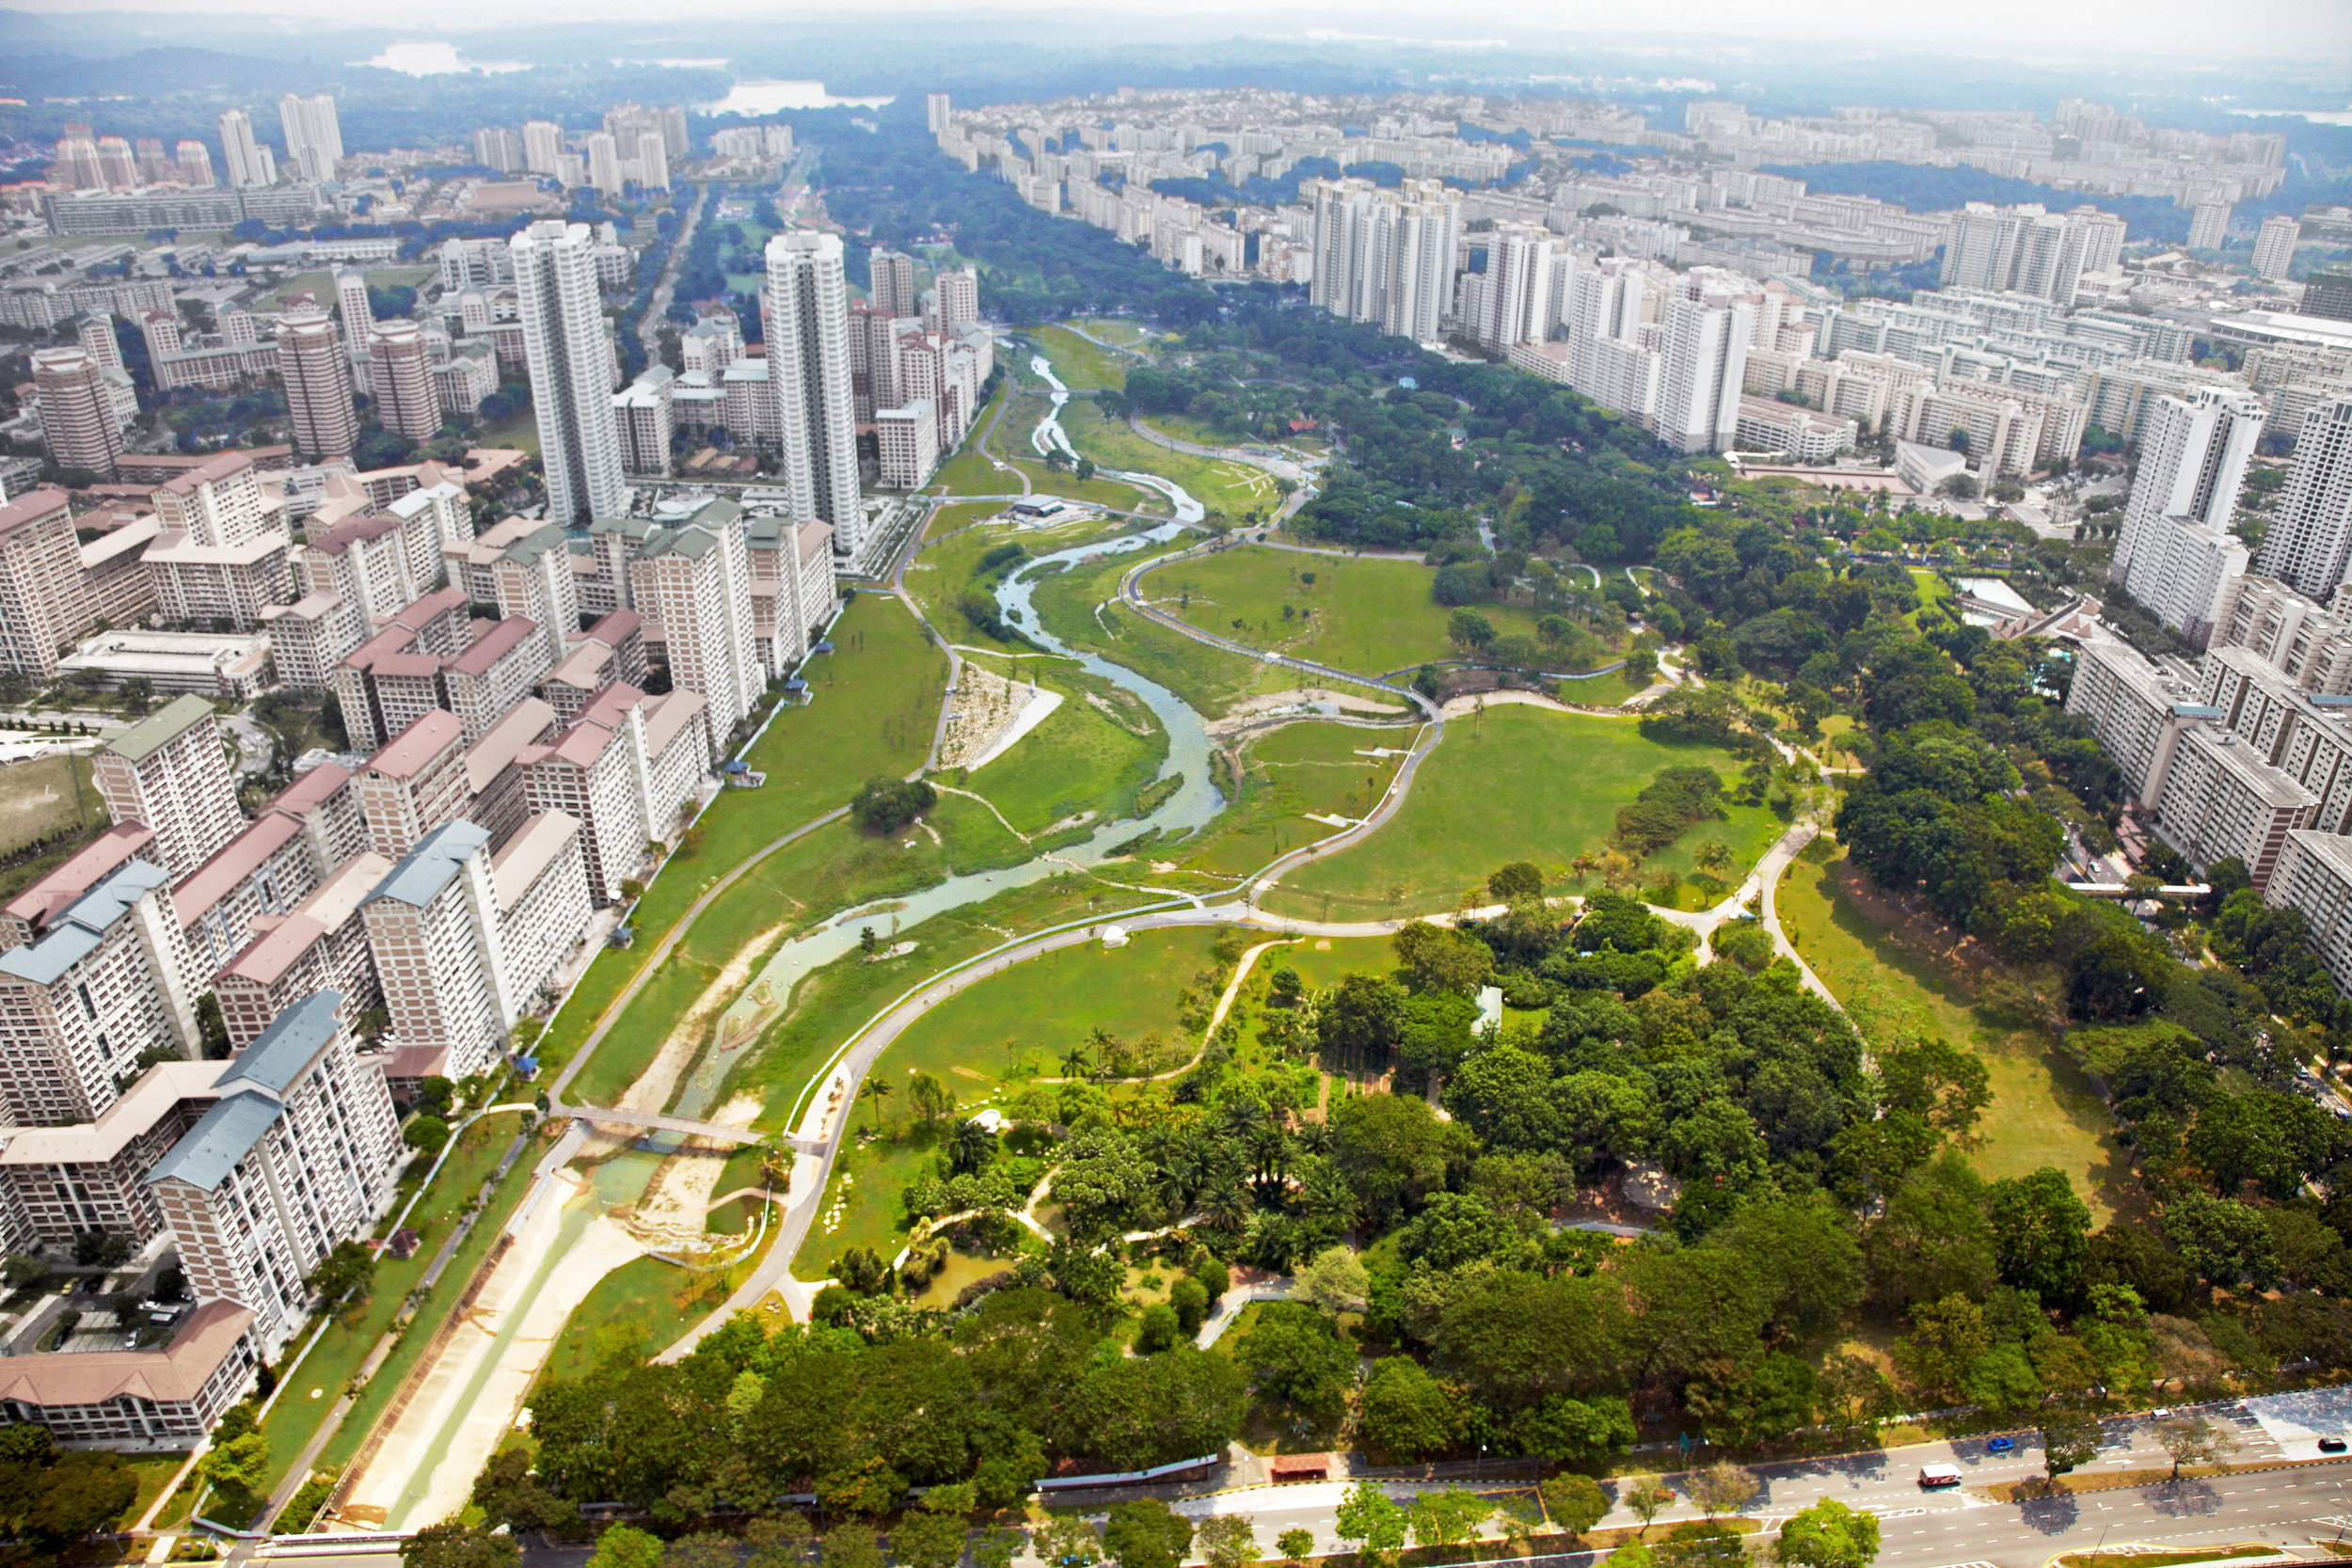 One of the most famous works by Studio Dreiseitl is the redevelopment of Bishan Park, that not only improved the capacity of the Kallang channel that used to run along the edge of the park, but transformed the utilitarian concrete channel into a naturalised river, creating new communal spaces. More info on the project can be found   here .  Photo: Studio Dreiseitl.